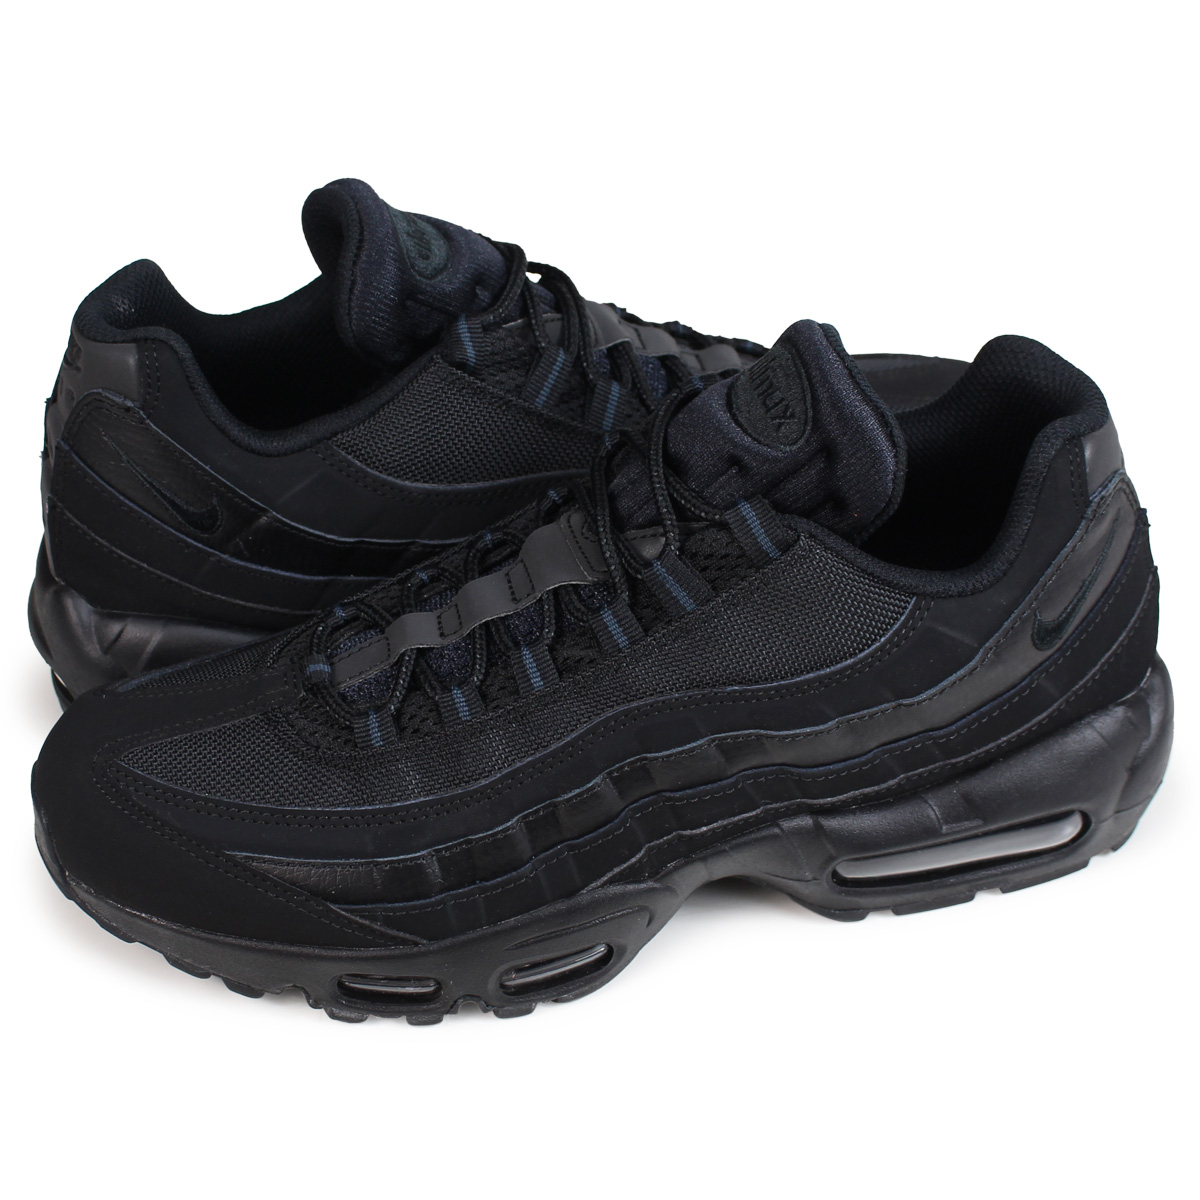 new concept cc303 7f172 Nike NIKE Air Max 95 sneakers men AIR MAX 95 609,048-092 black  the 5 8  additional arrival   194